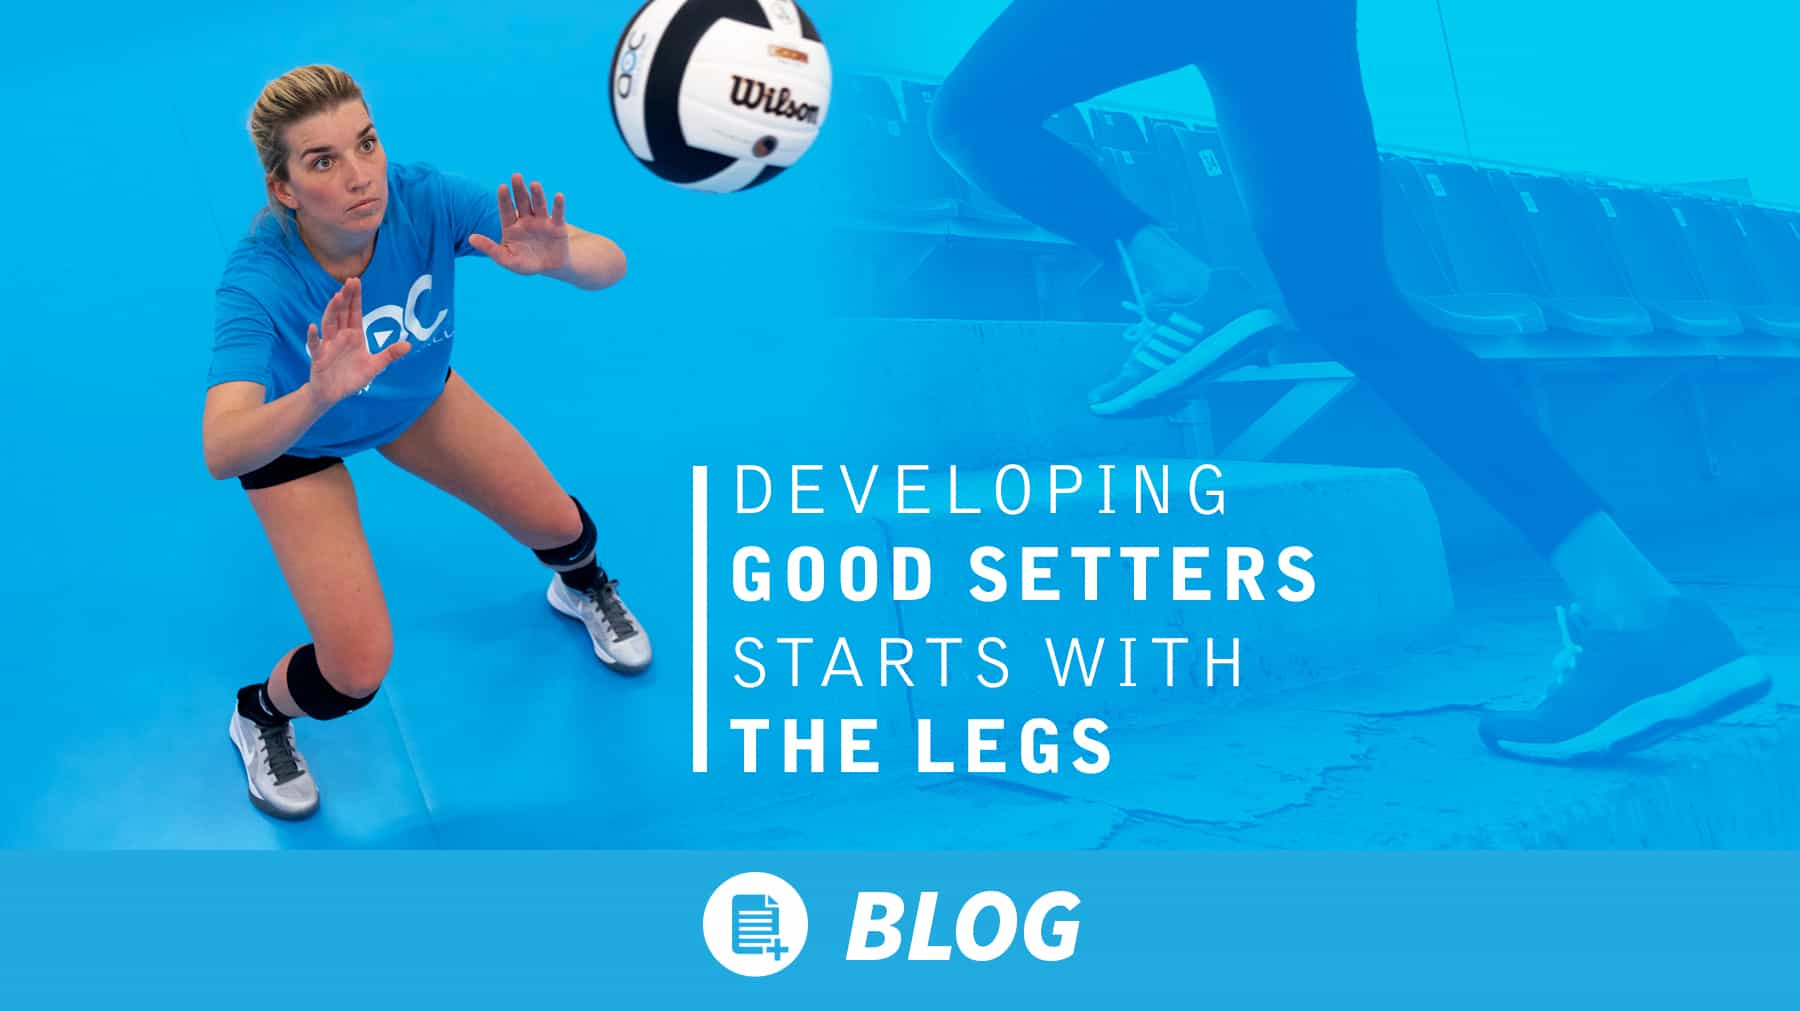 Developing good setters starts with the legs